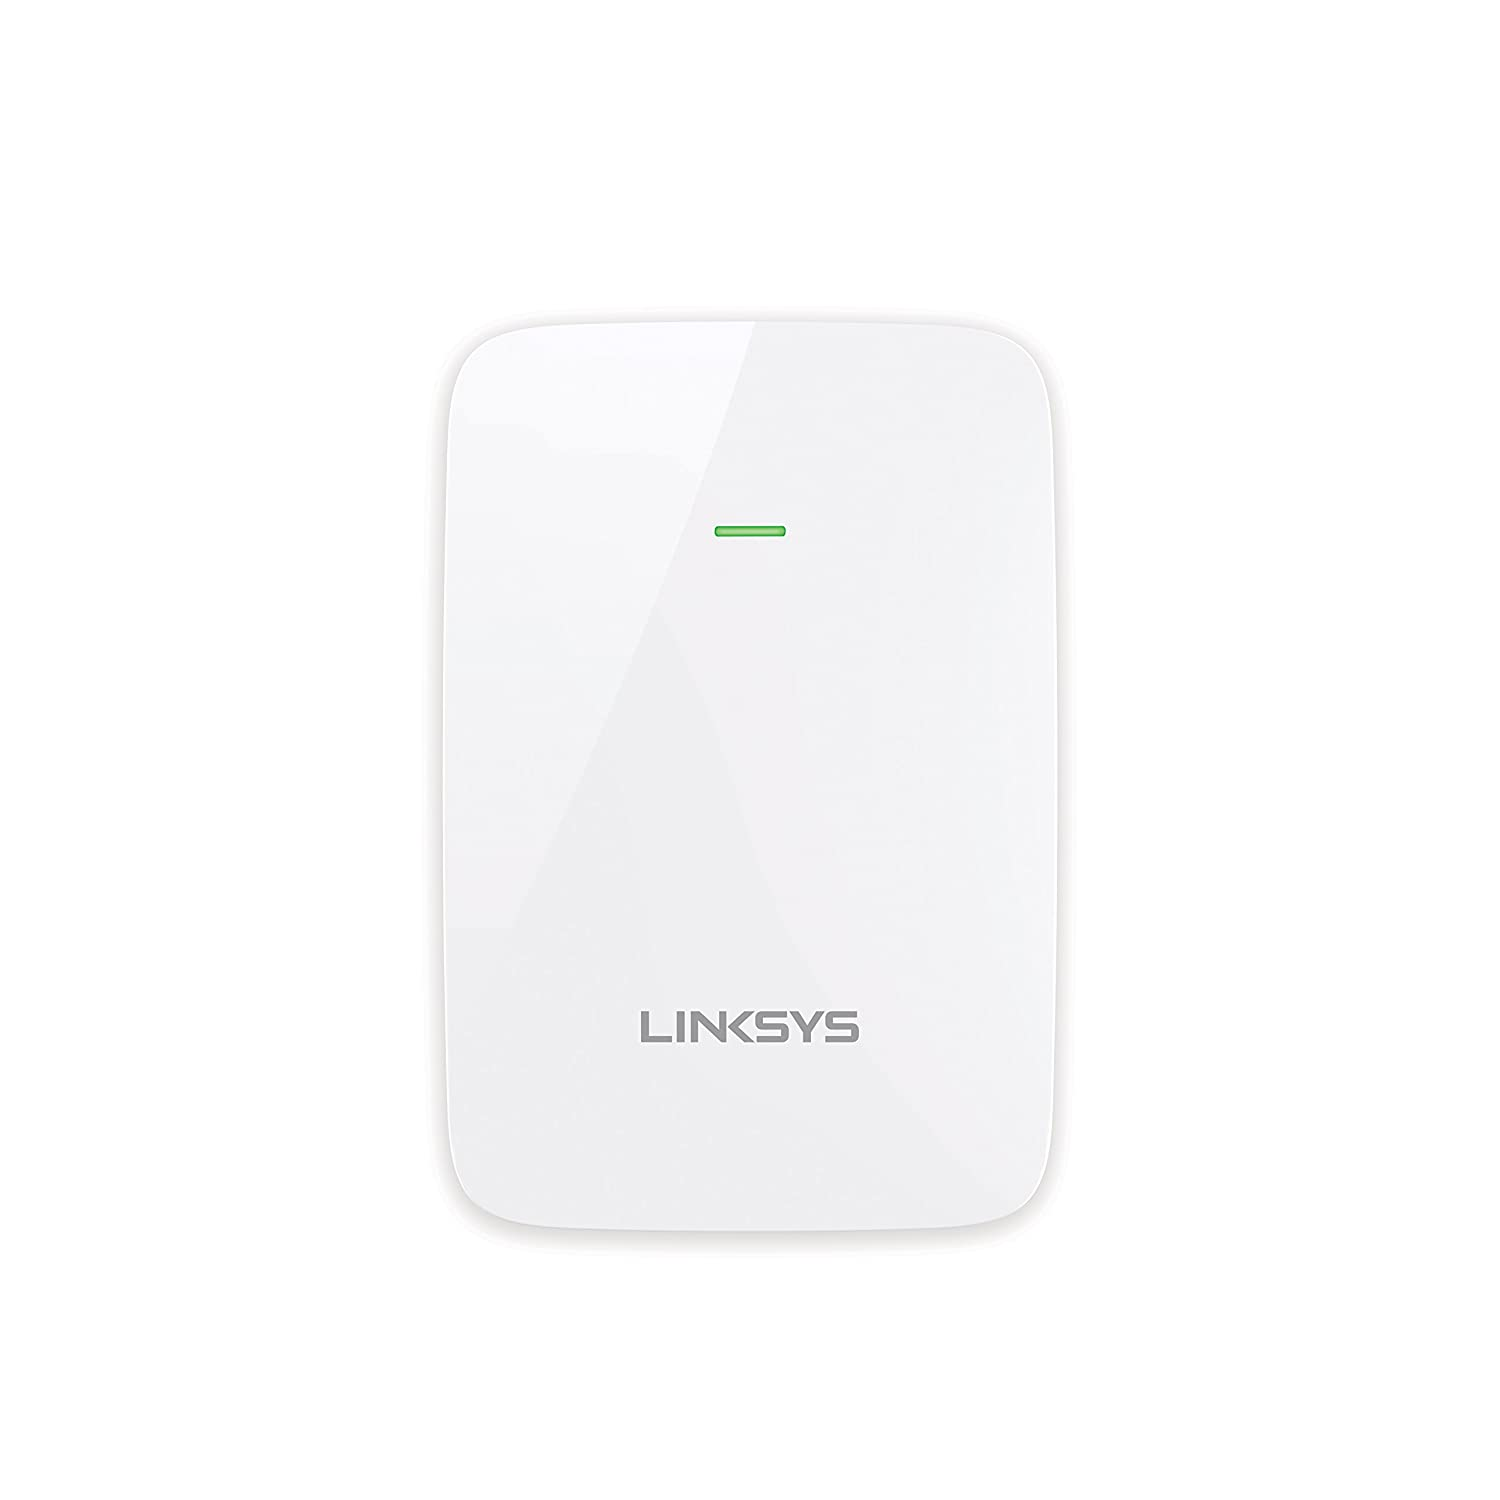 Linksys AC750 Dual-Band Wi-Fi Range Extender / Wi-Fi Booster (RE6250)